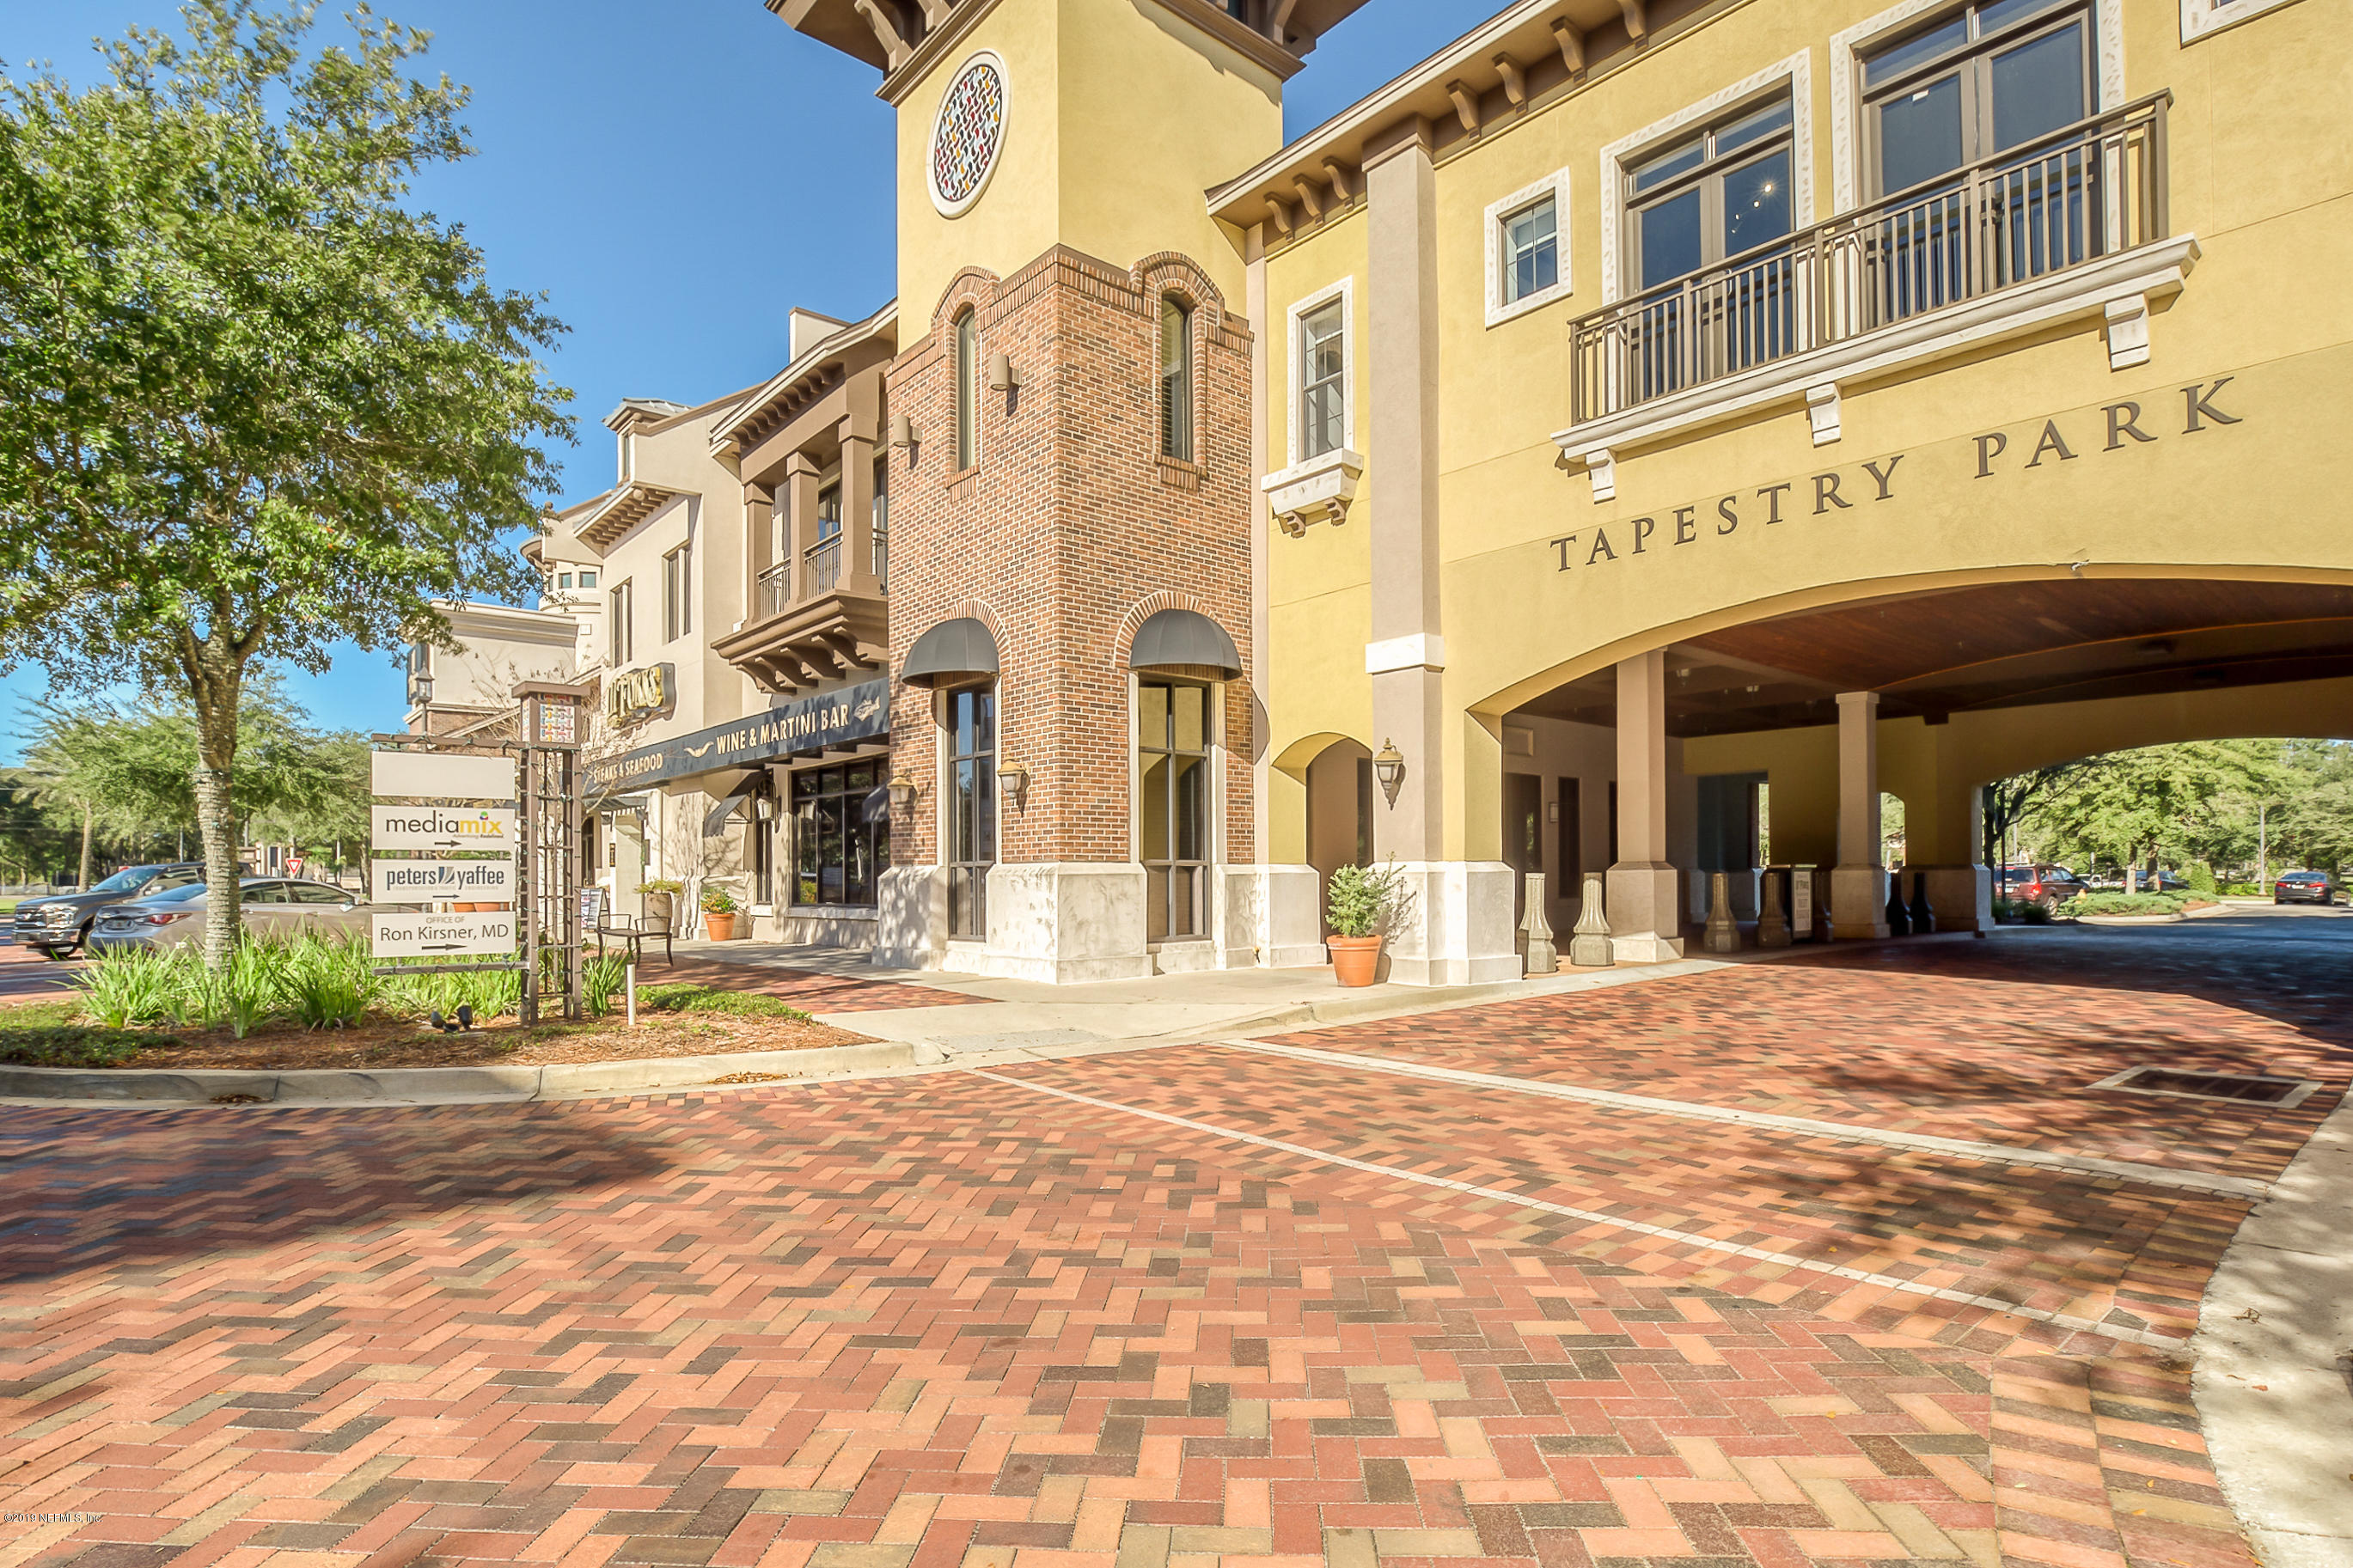 9822 TAPESTRY PARK, JACKSONVILLE, FLORIDA 32246, ,Commercial,For sale,TAPESTRY PARK,1081761